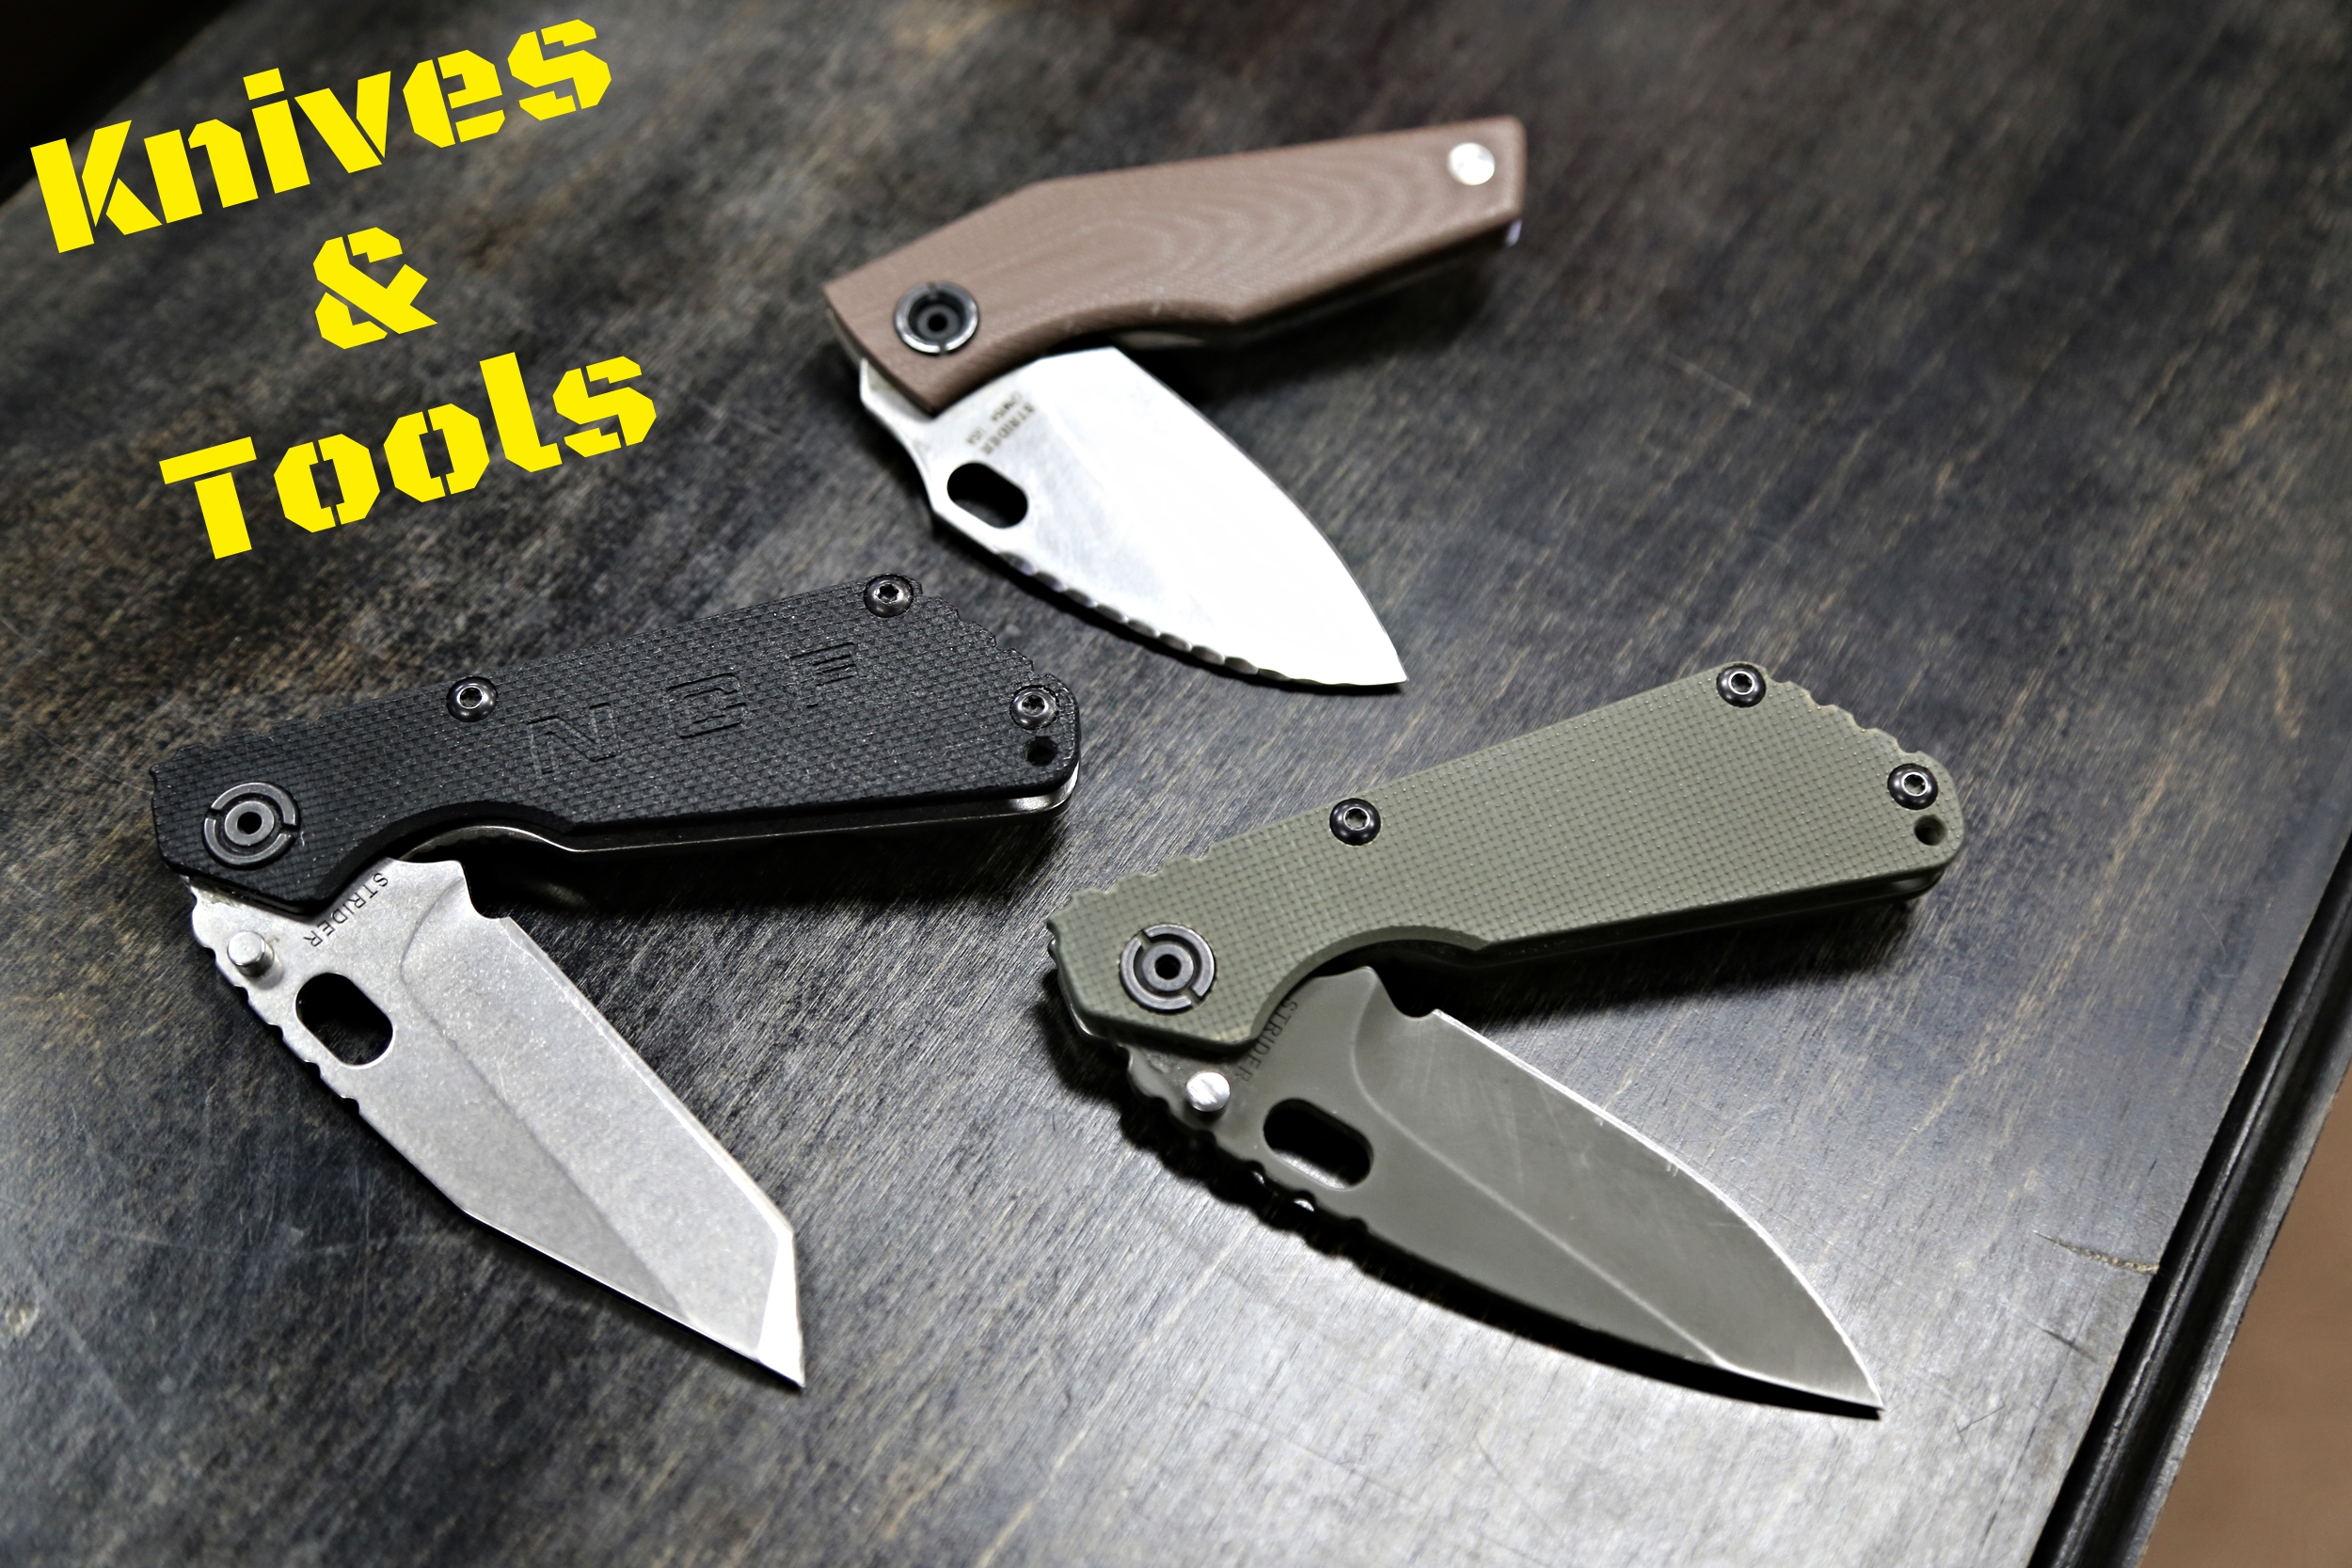 There is nothing like being prepared for any situation where you need a good blade or tool at your side.  That's why we always have high-quality knives and multi-tools for sale at our store.  By such trusted and great manufacturers like: -Strider Knives -Gerber  and more!